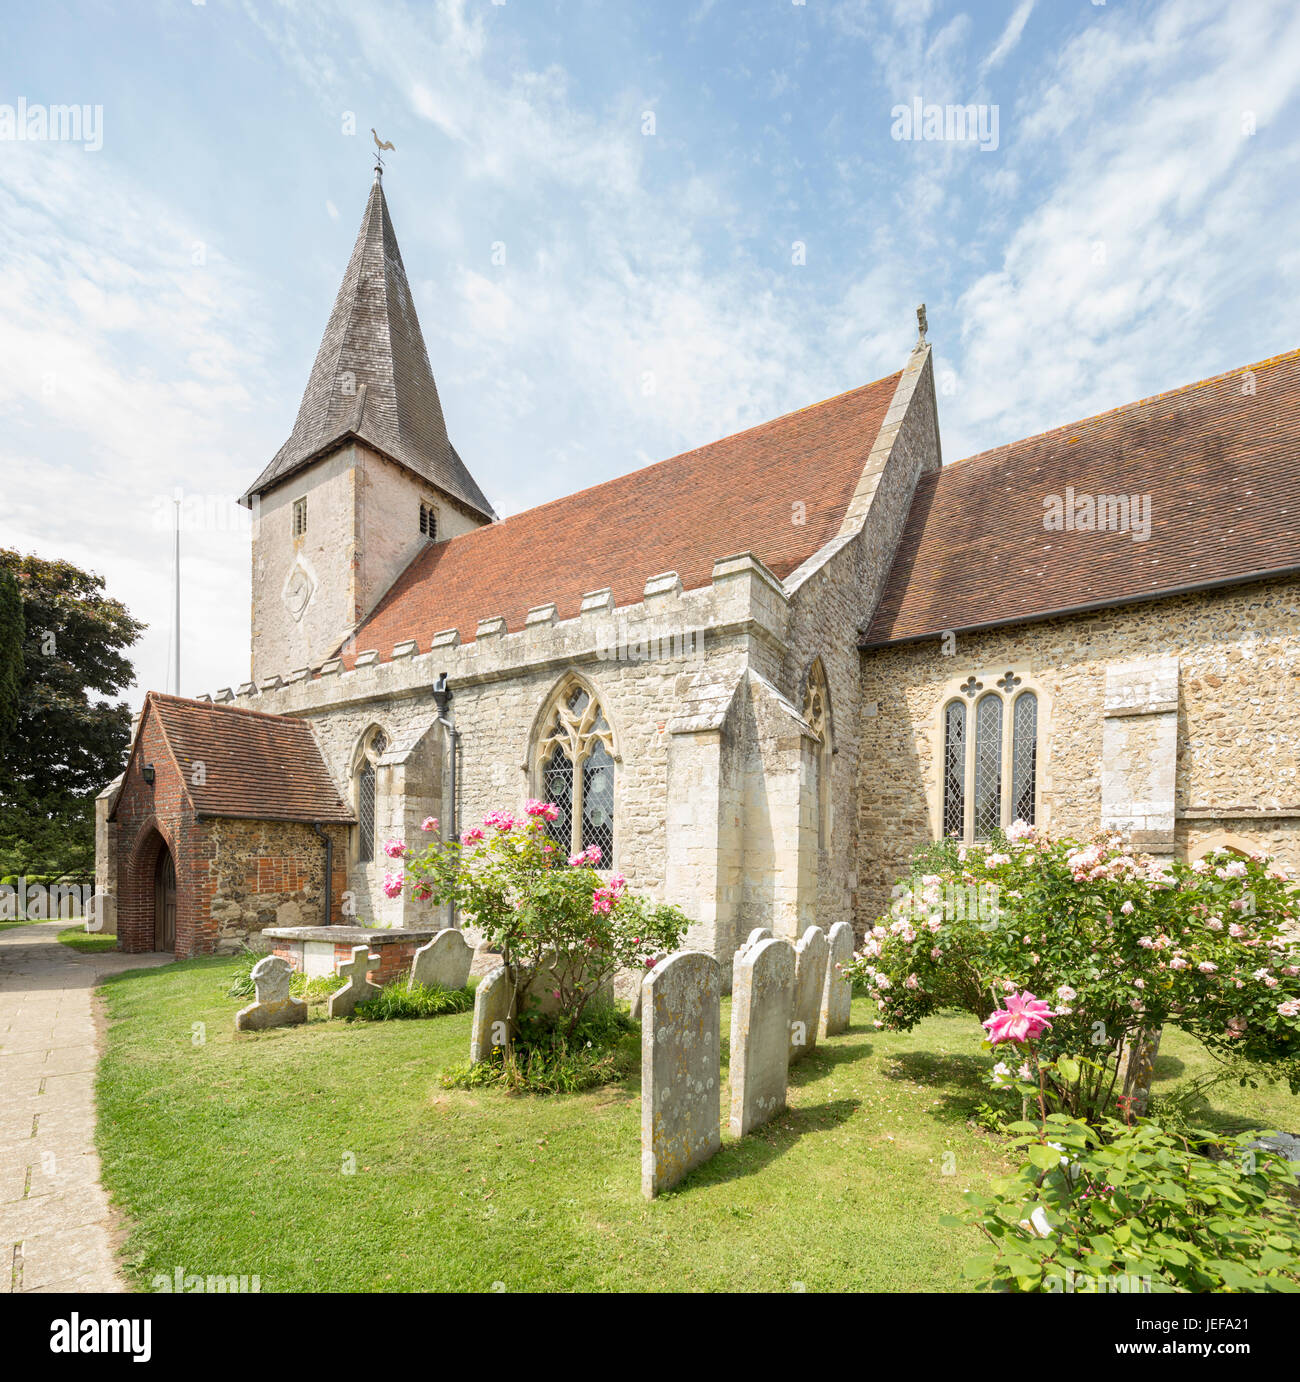 The Holy Trinity Church in the attractive coastal village of Bosham, West Sussex, England, UK - Stock Image